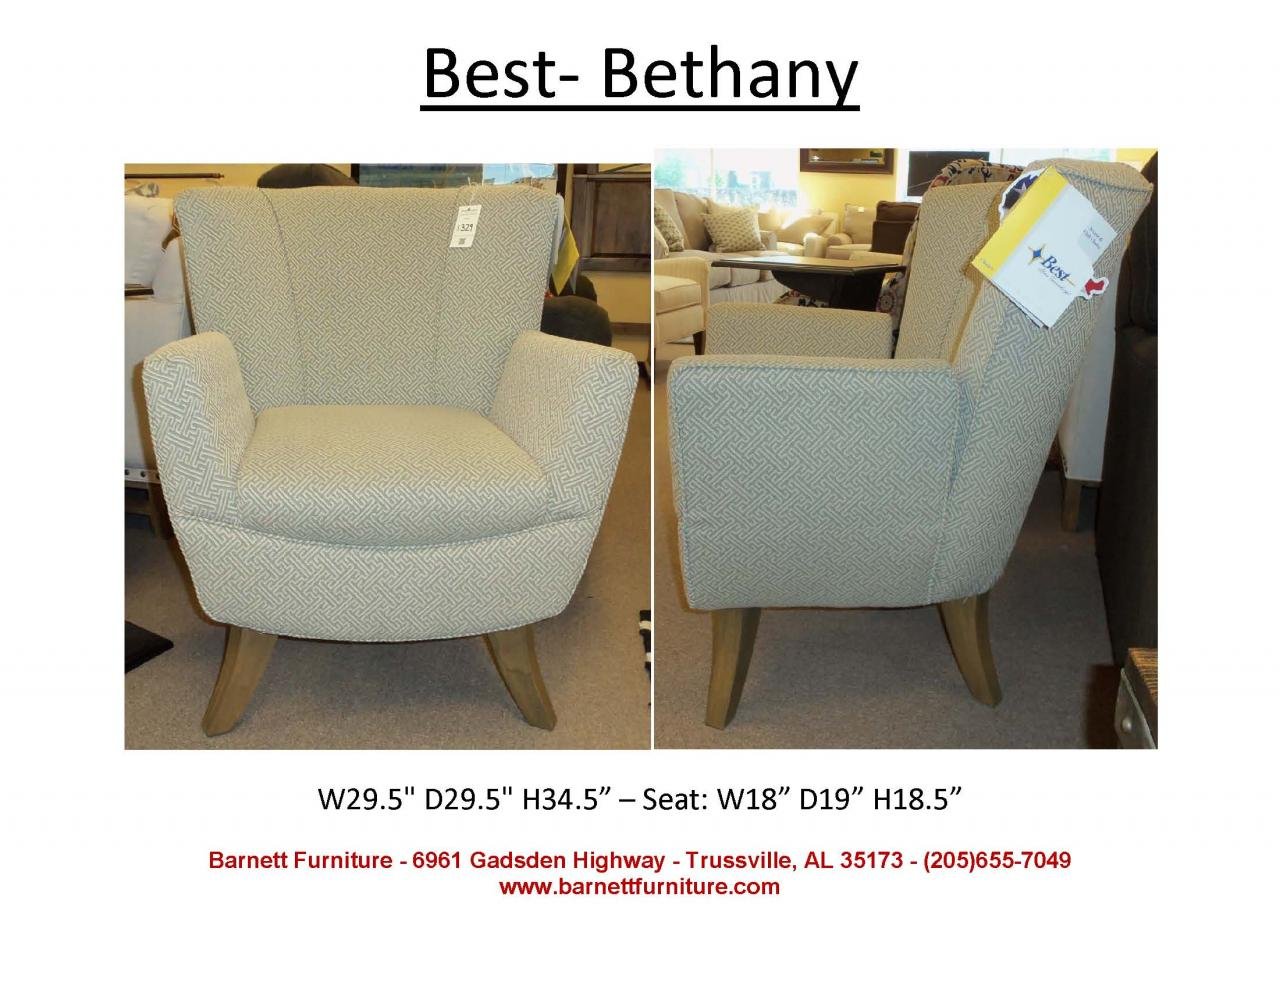 Best Bethany Chair